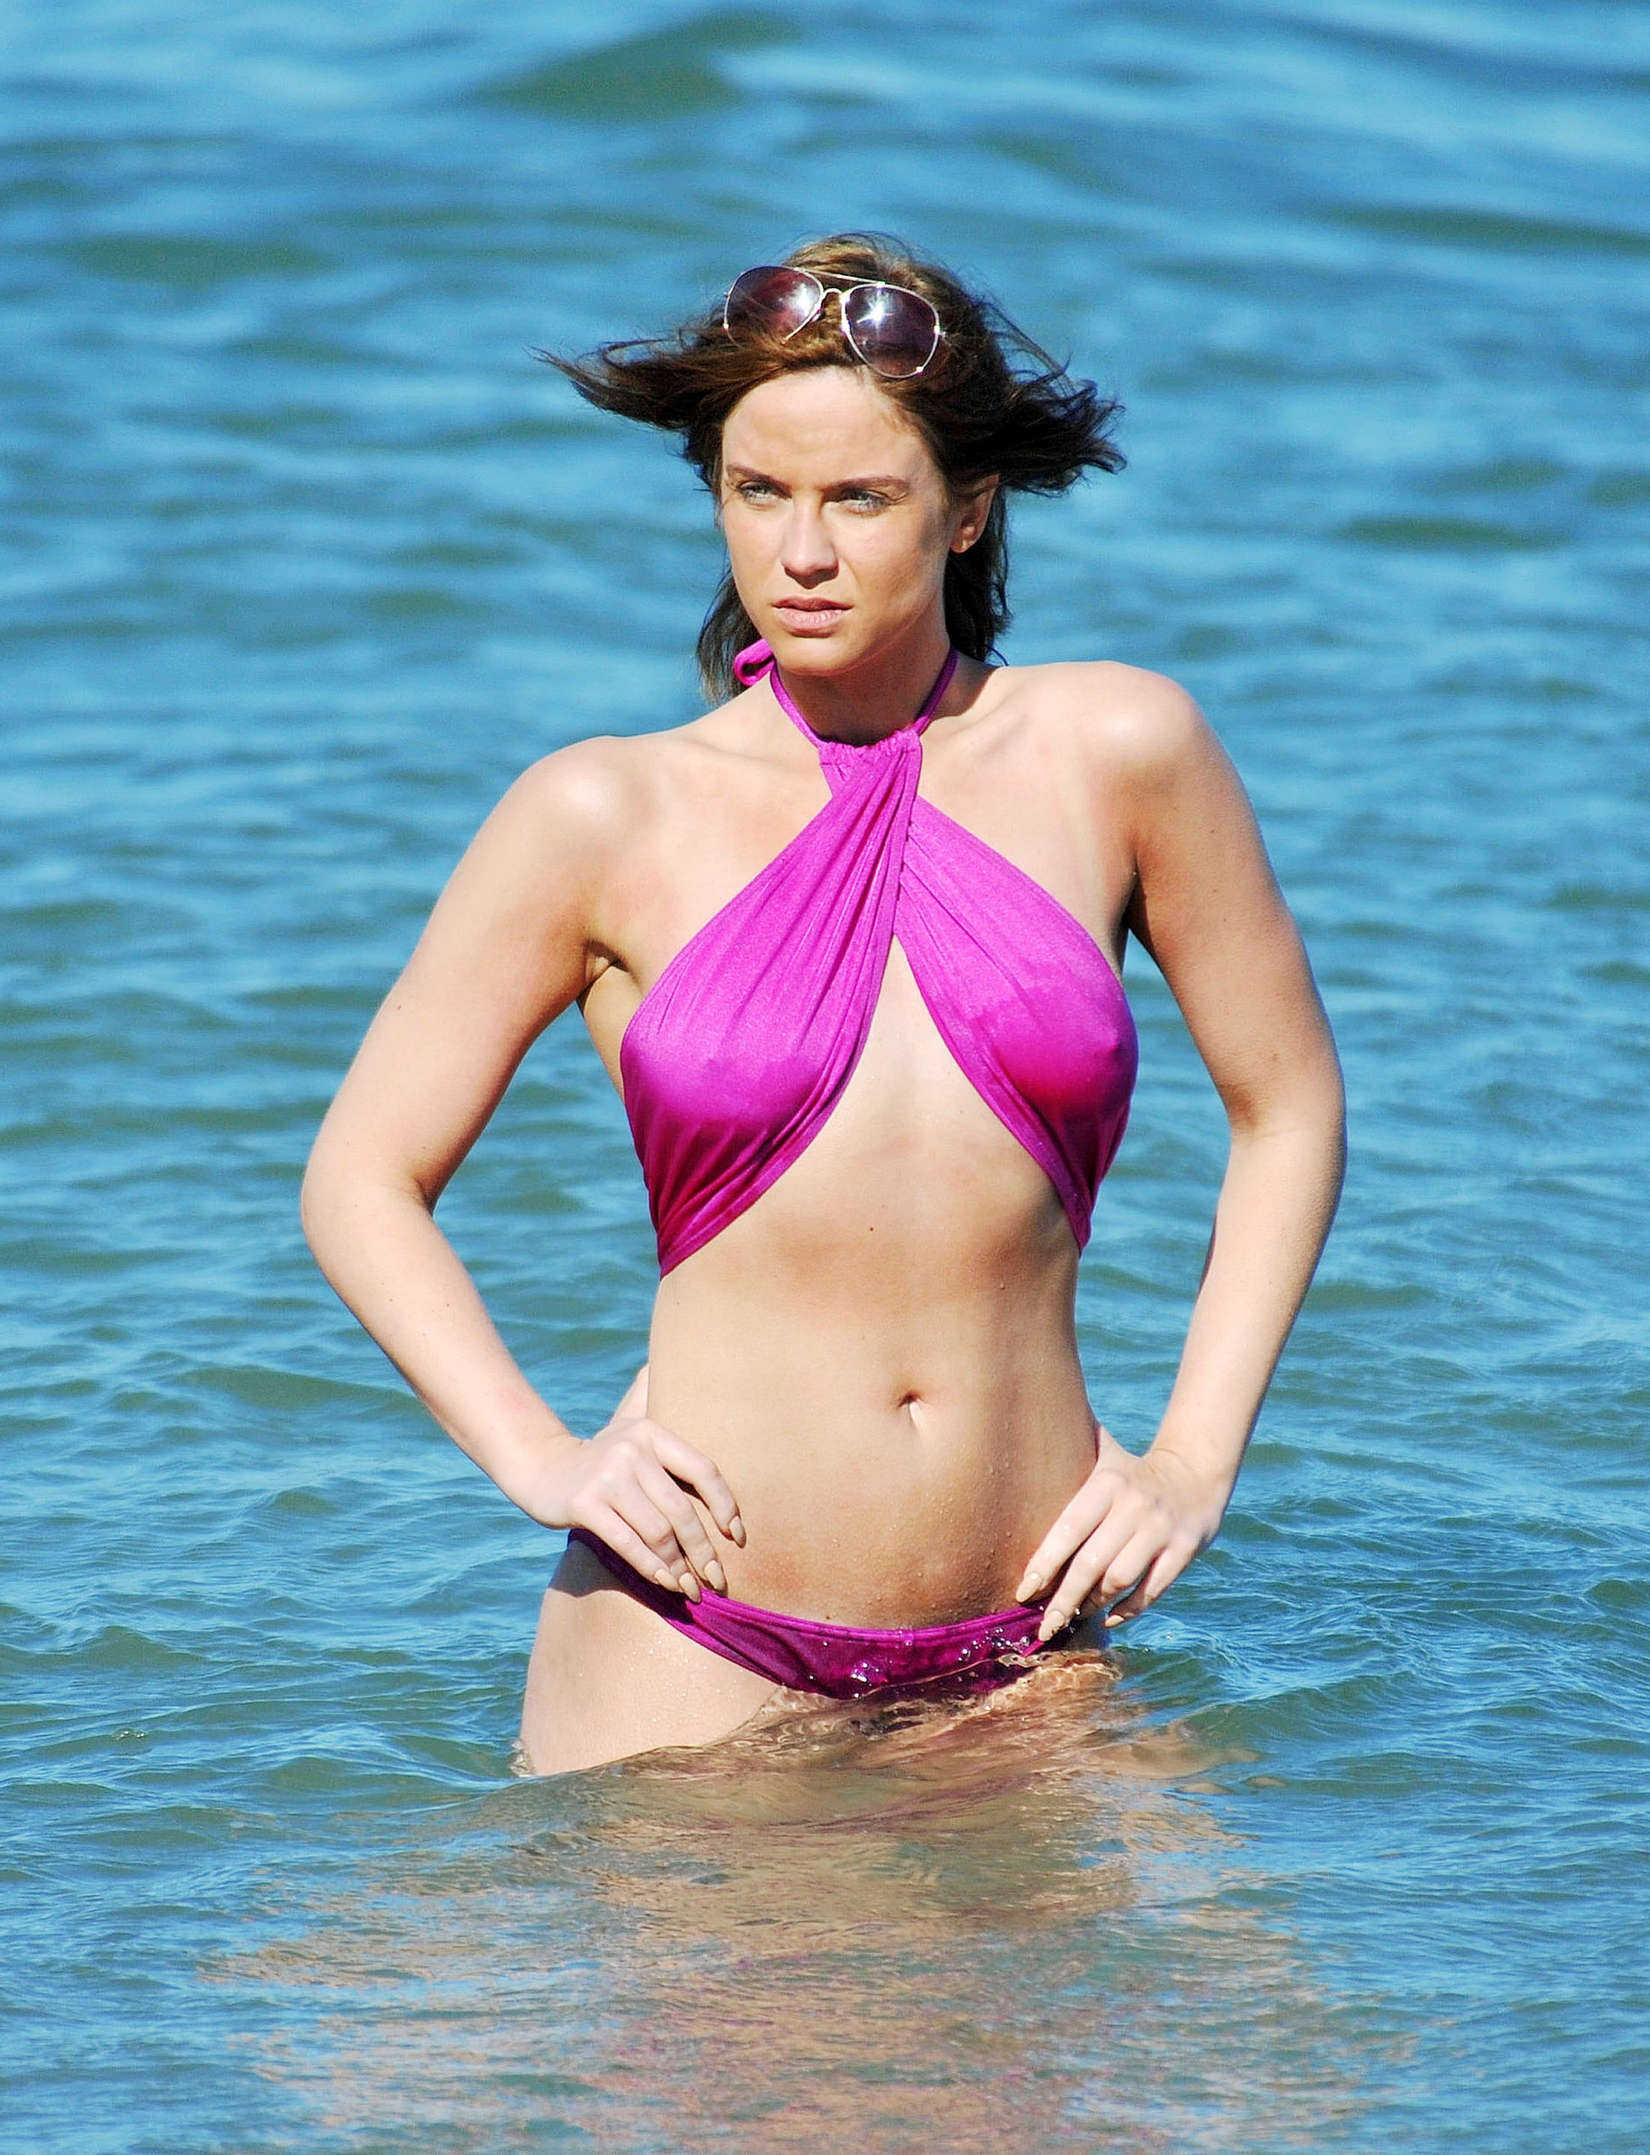 Vicky Pattison Nude - Page 3 Pictures, Naked, Oops -1154